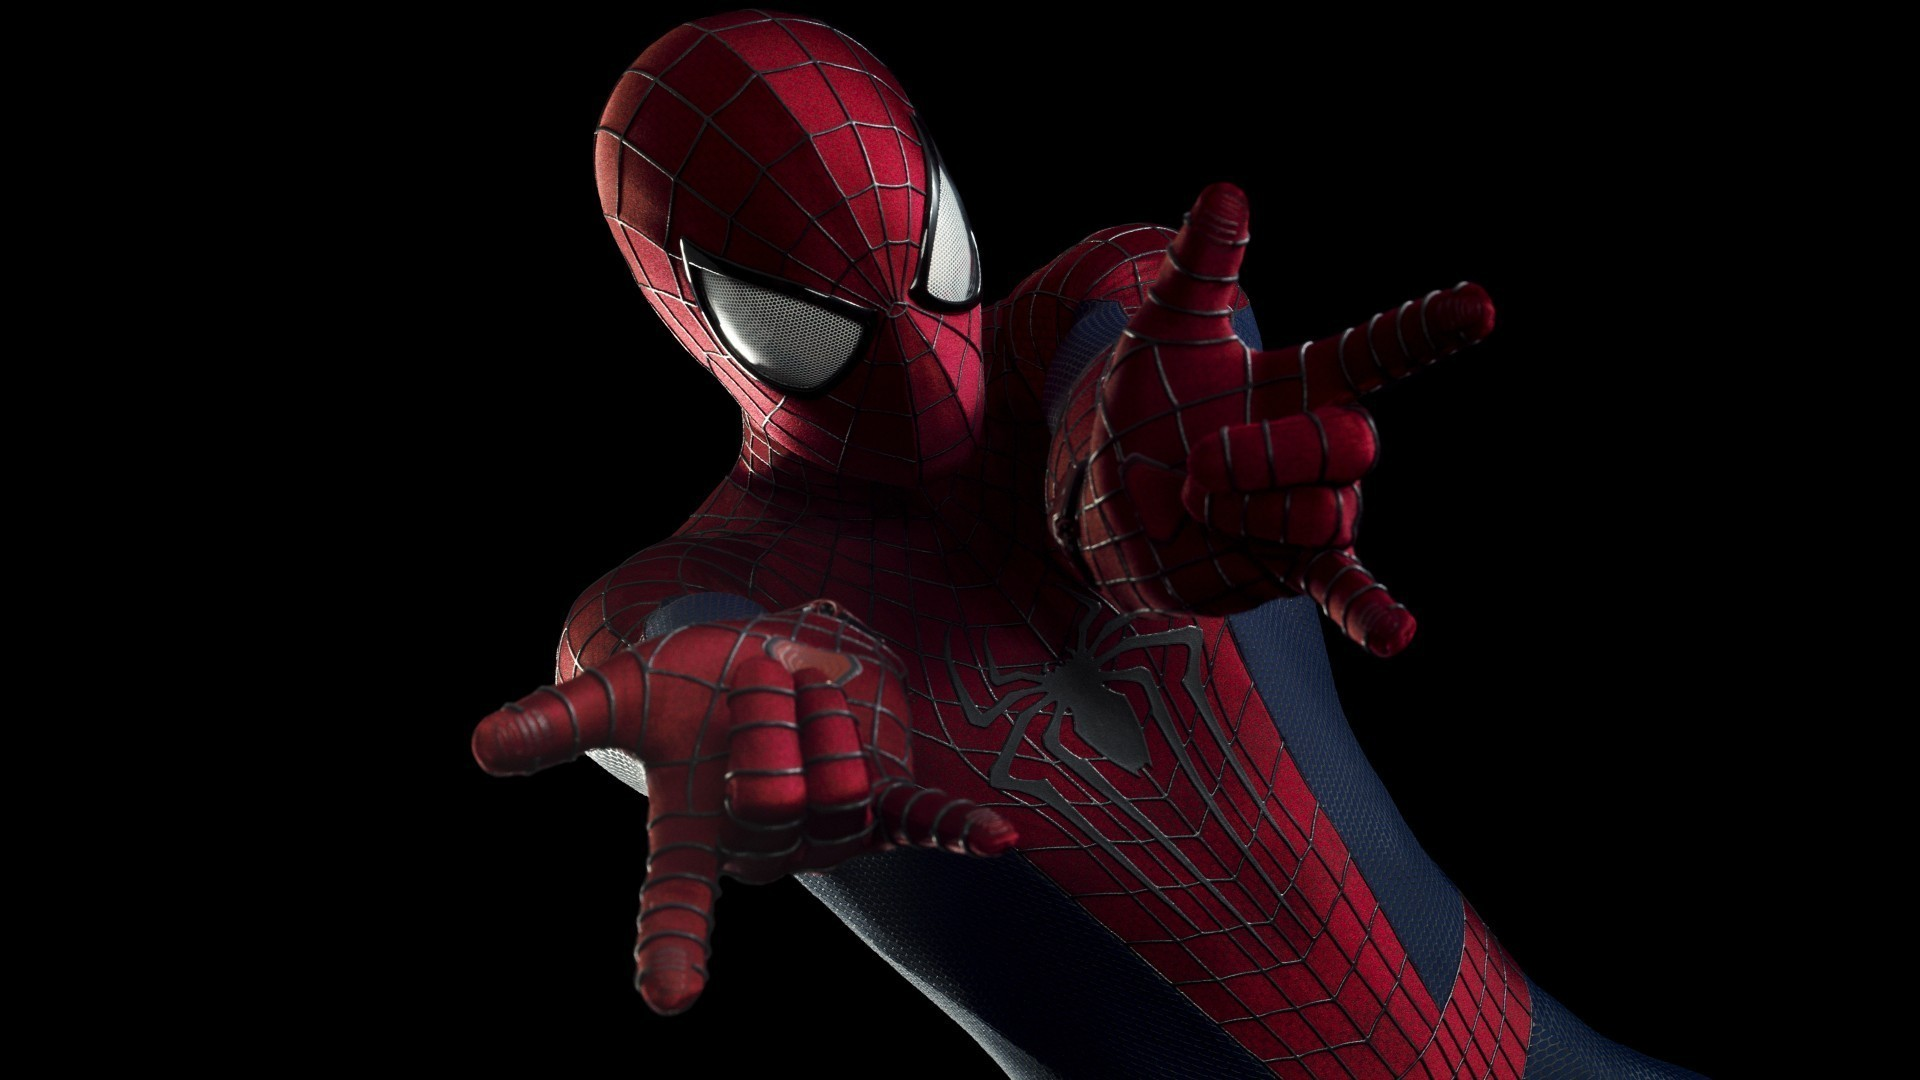 The Amazing Spider Man 2 Hd Wallpaper Background Image